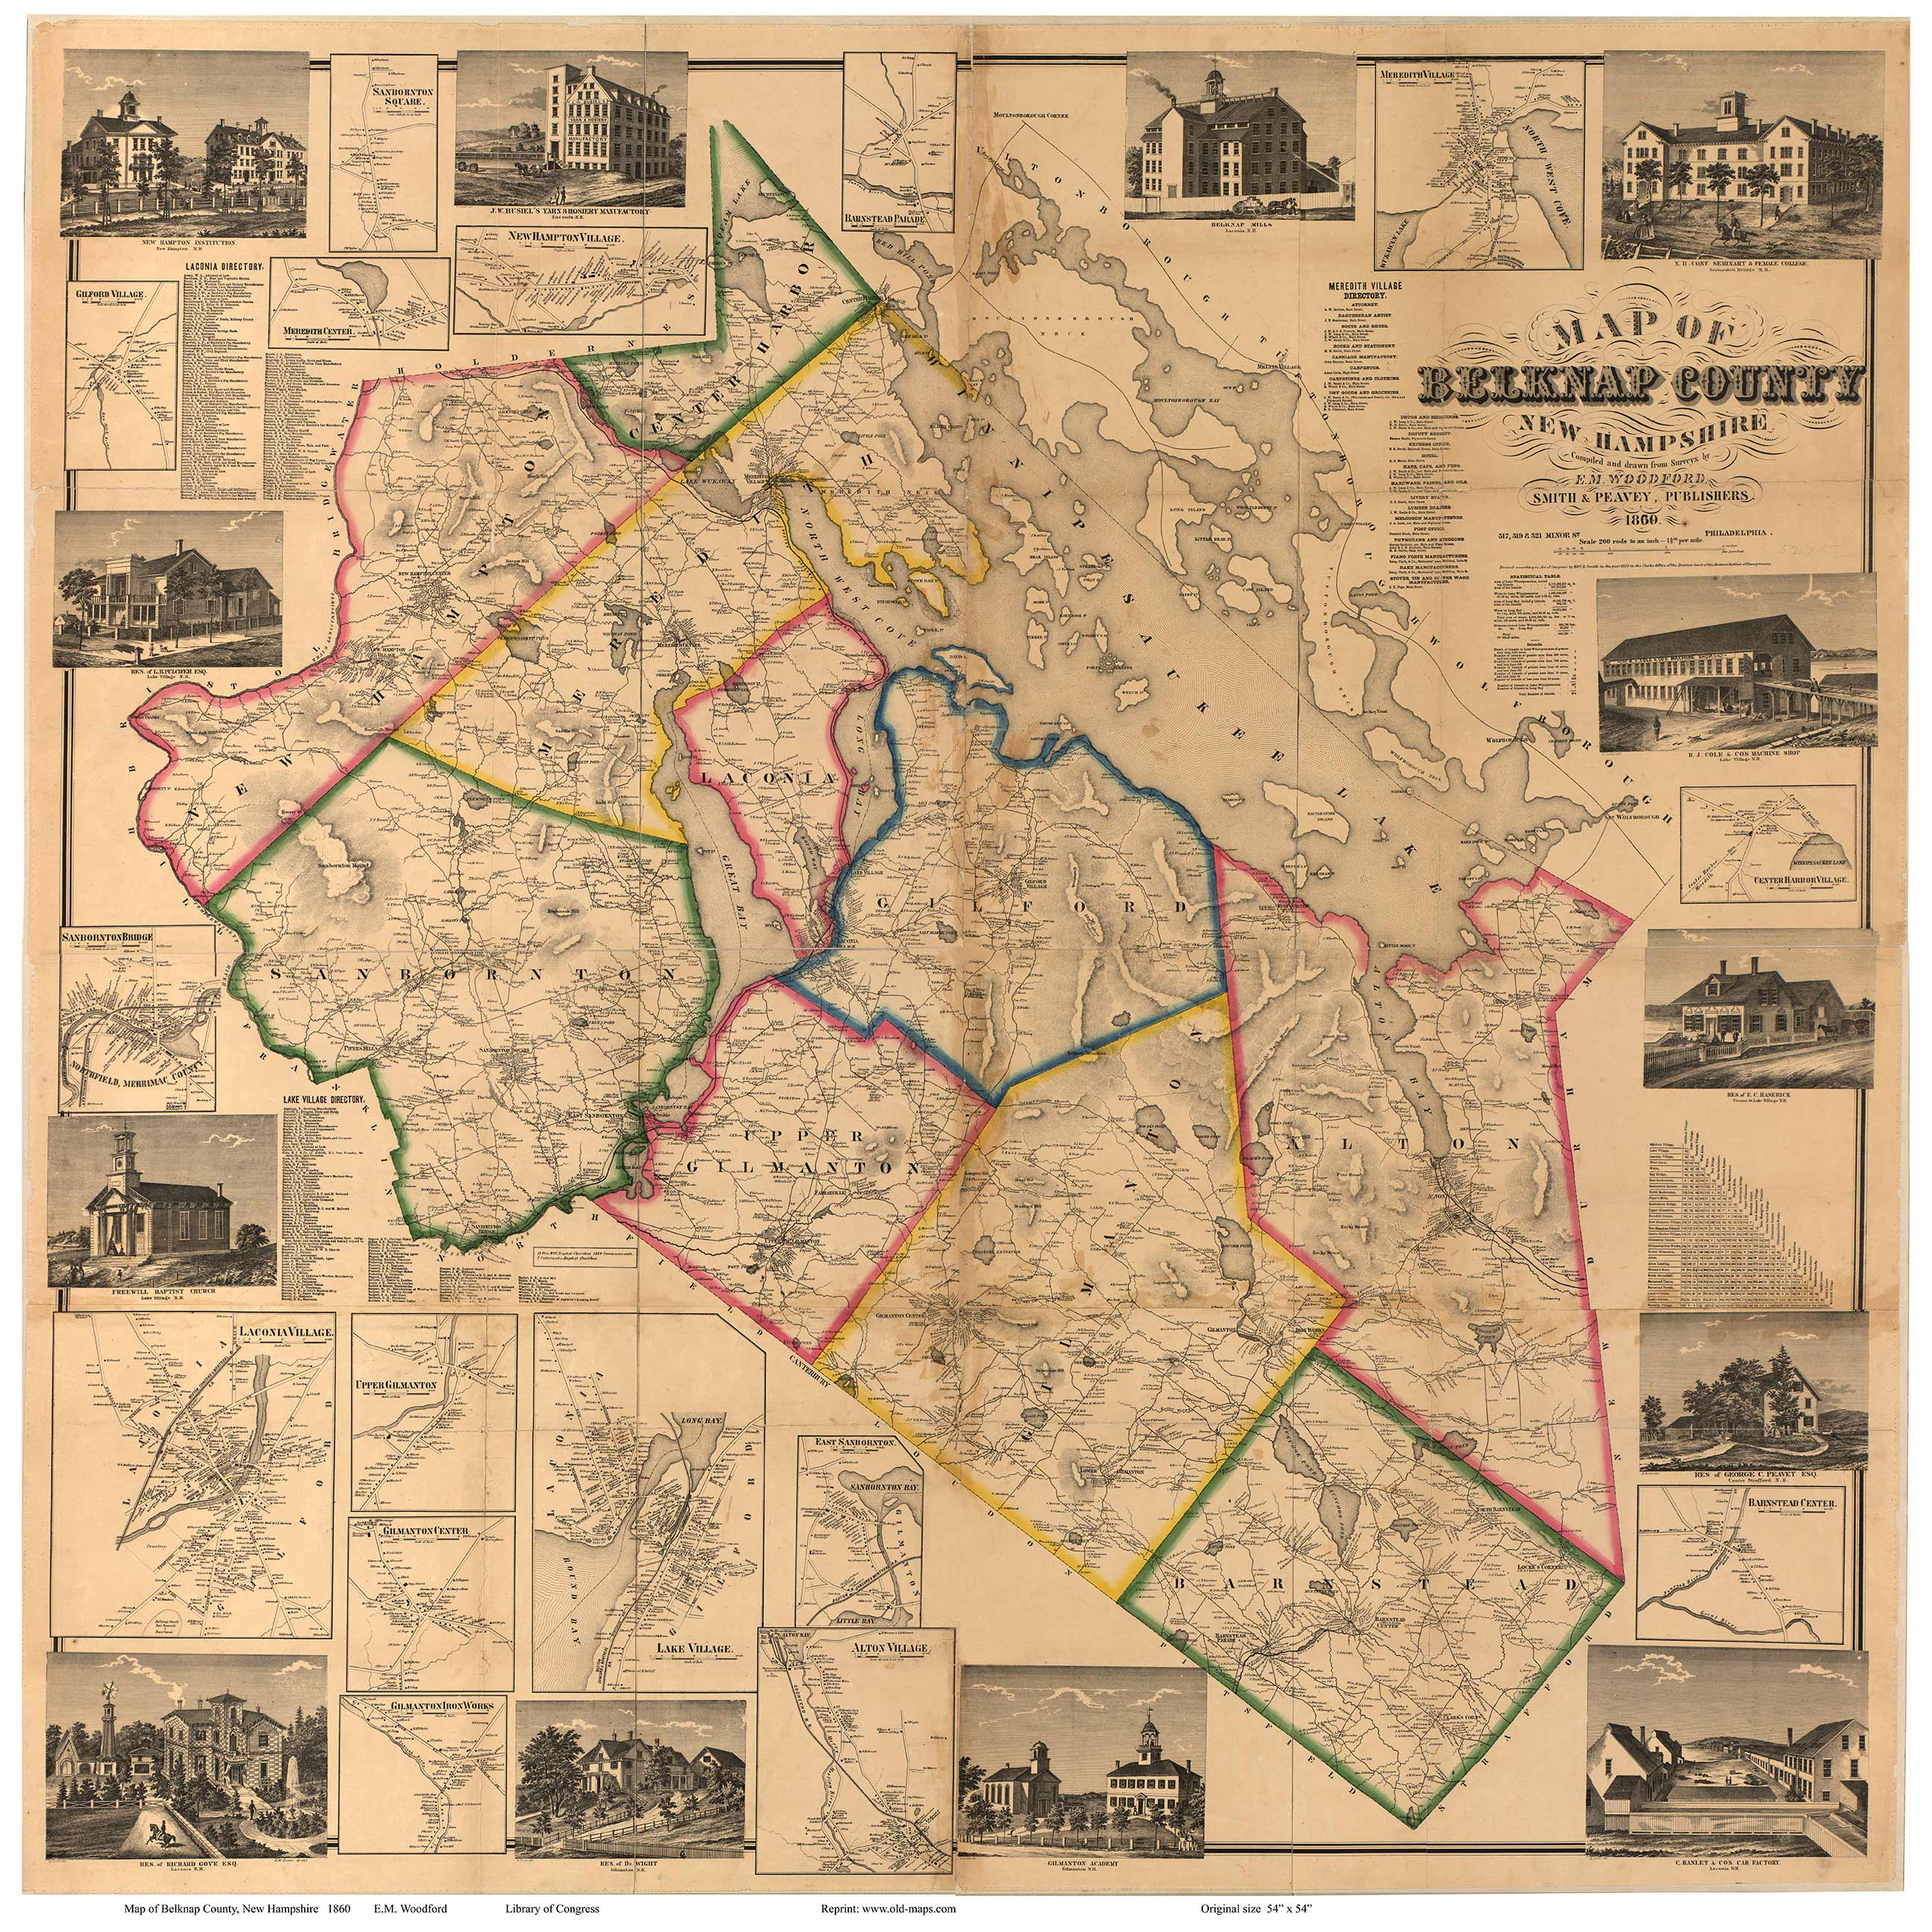 Early Wall Maps Of Belknap County NH Original Map - Old map shop